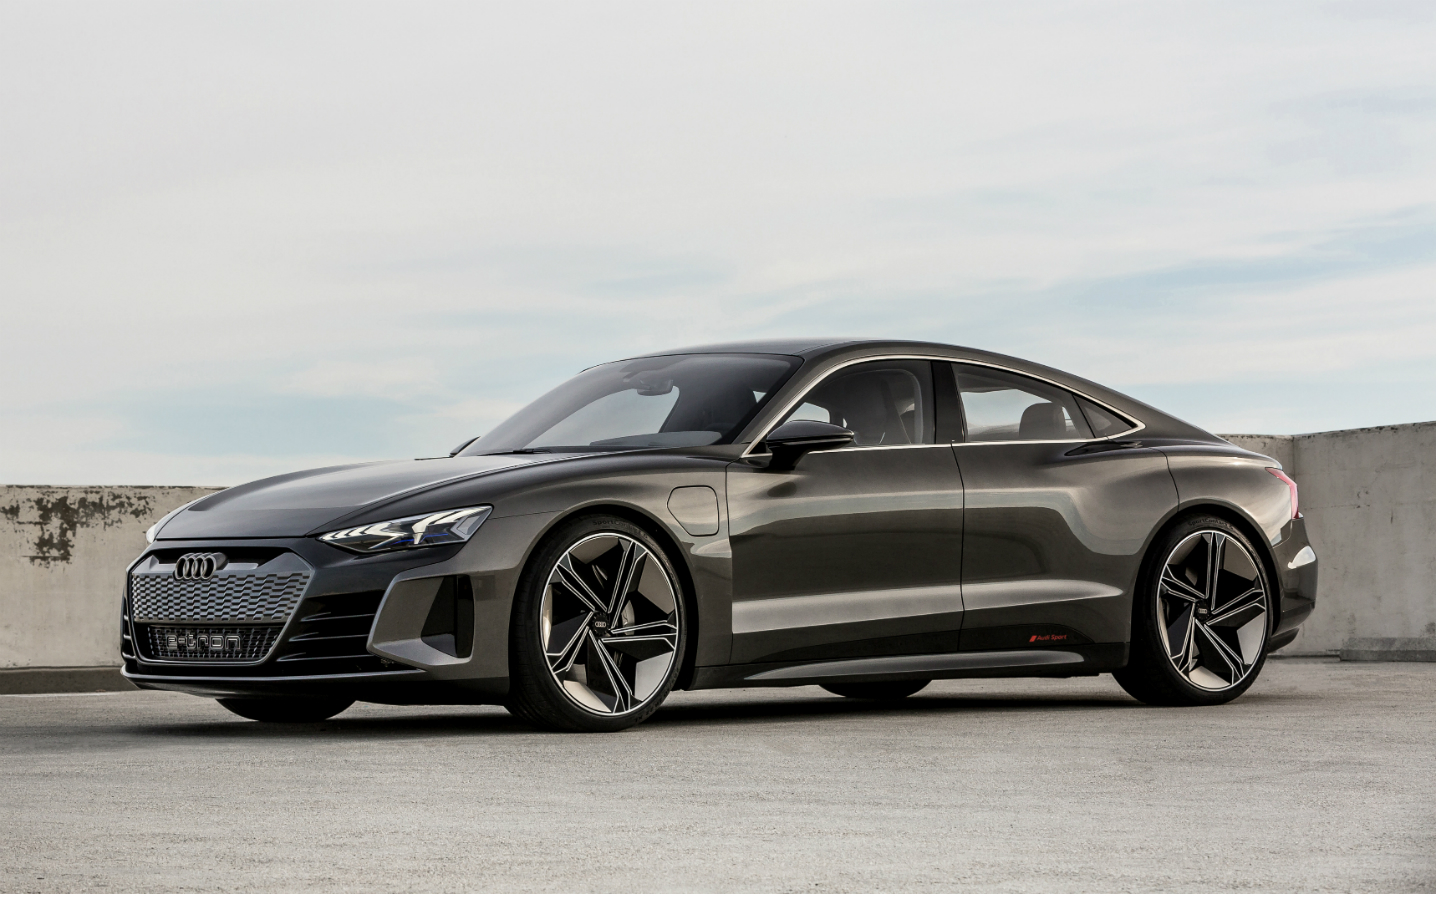 62 Concept of Audi Hybrid Range 2020 Pricing with Audi Hybrid Range 2020